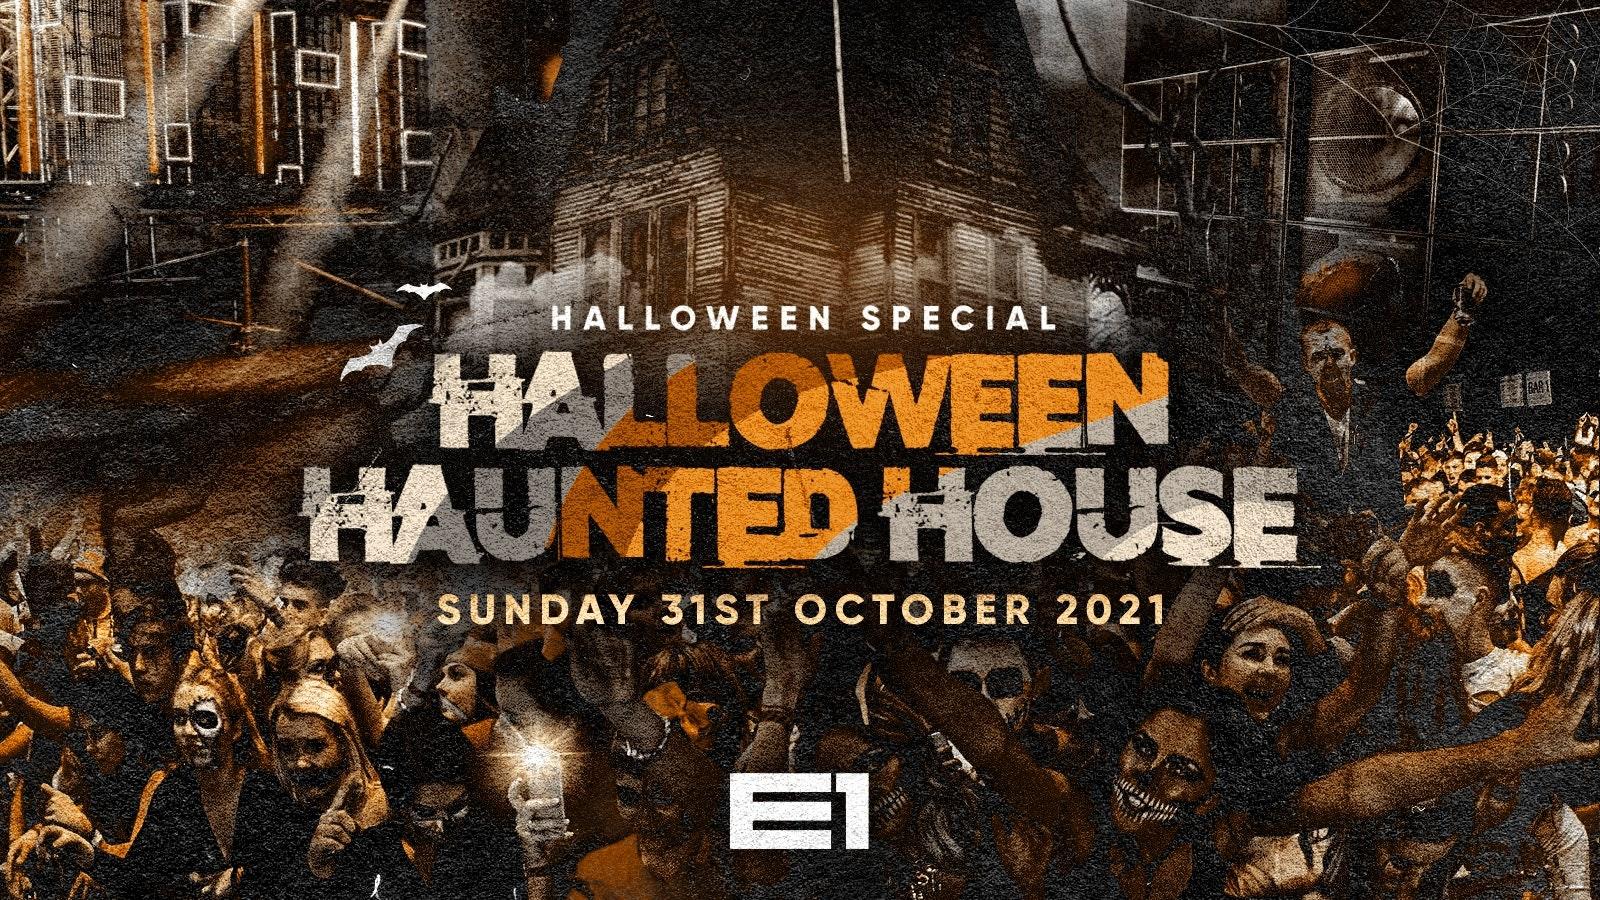 The Halloween Haunted House @ E1 – ⚠️This event will sell out⚠️